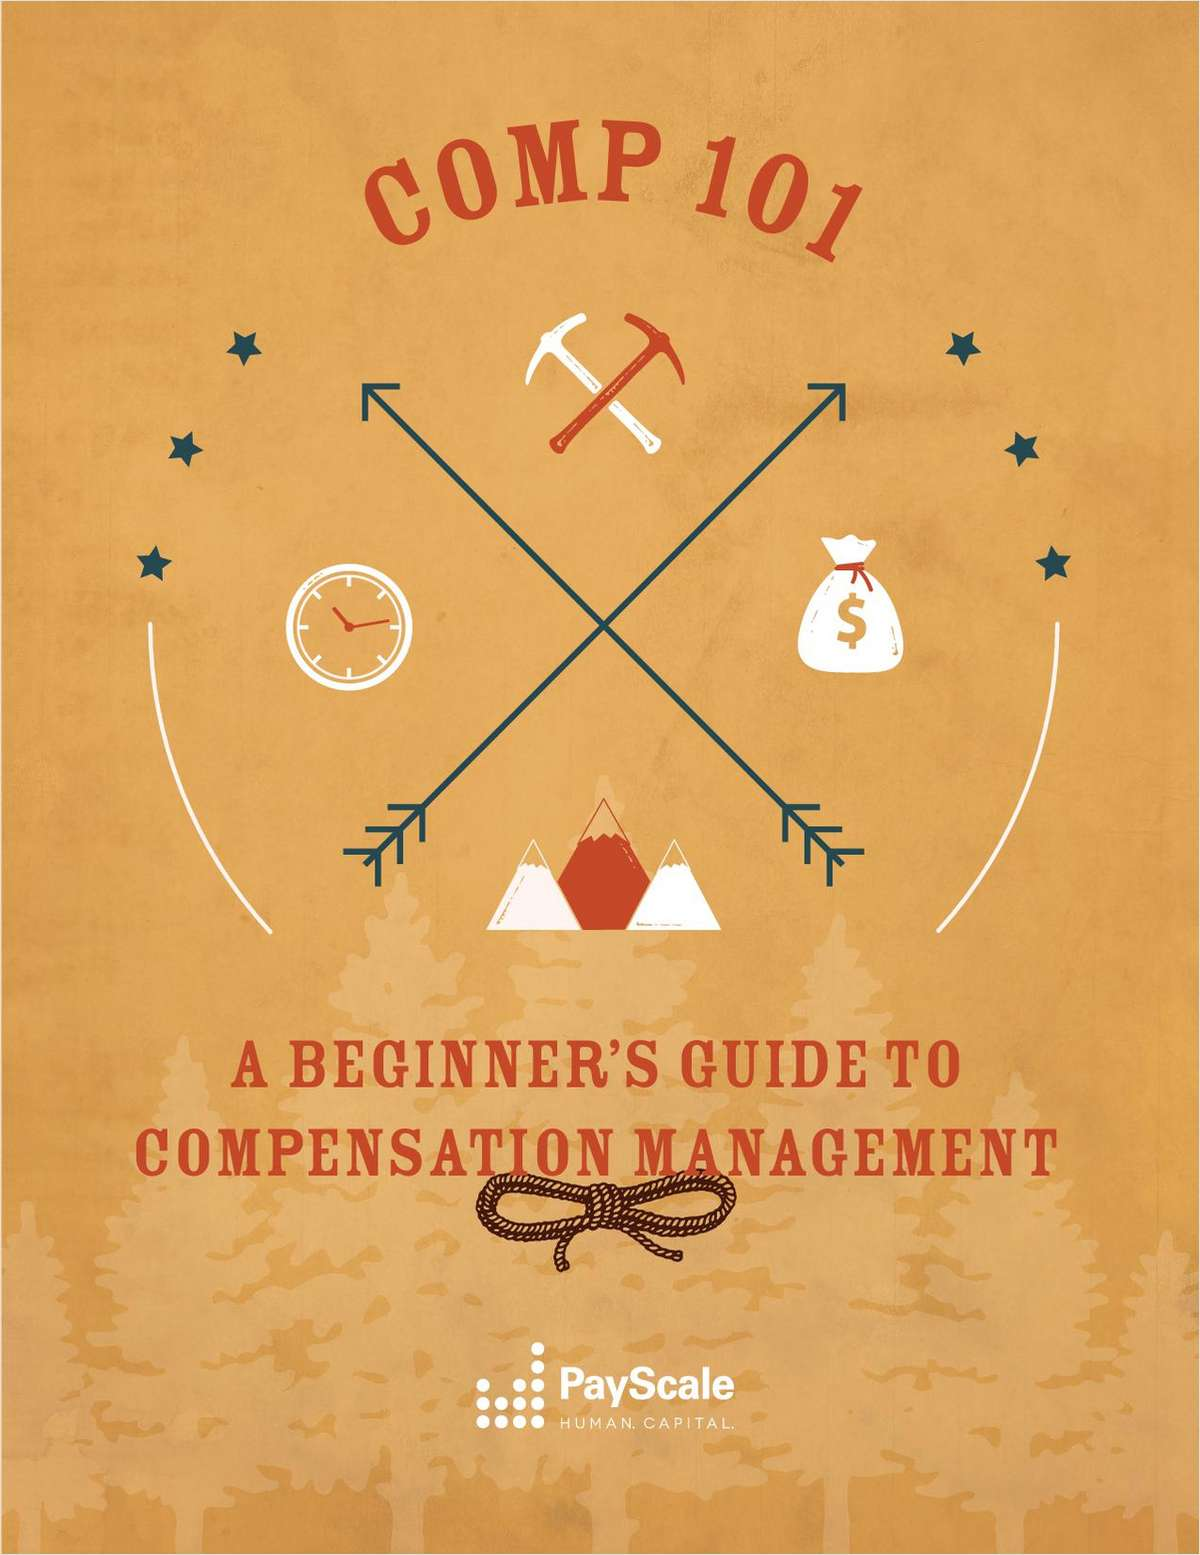 Compensation 101: A Beginner's Guide to Compensation Management